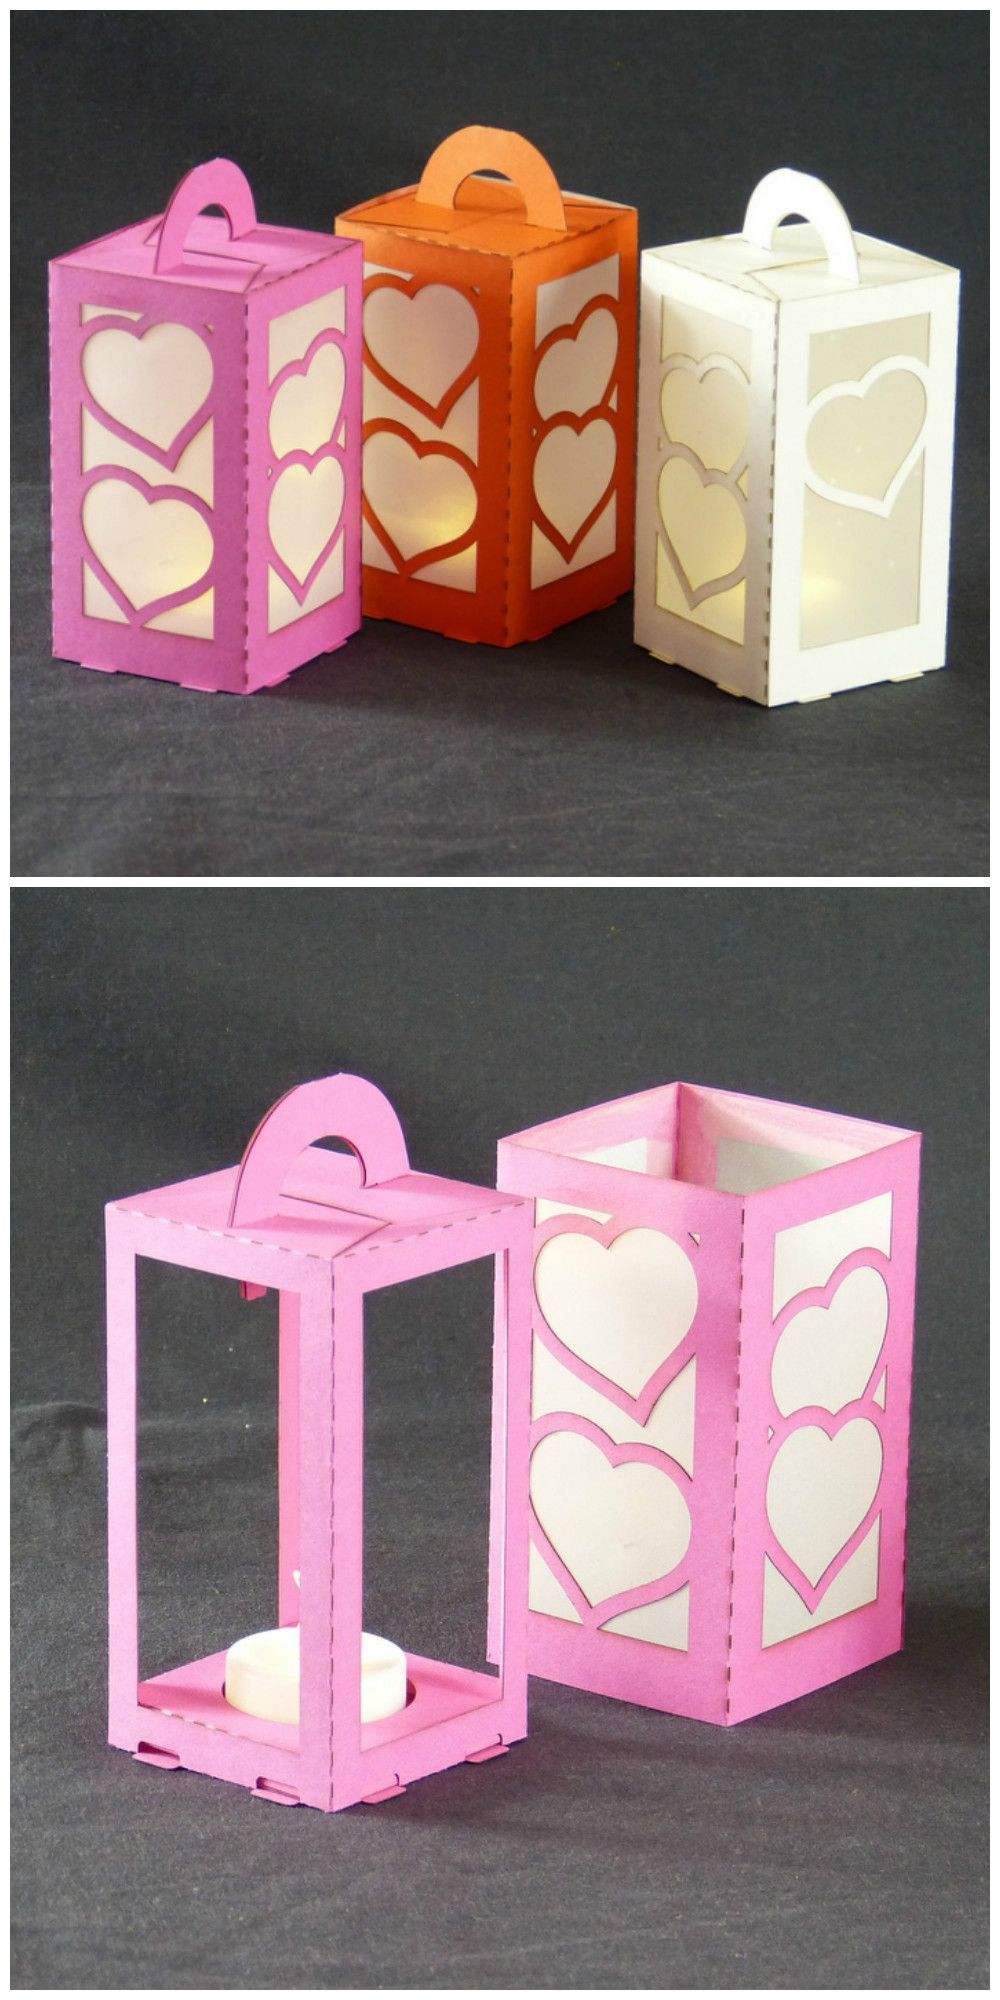 Diy Paper Lanterns Free Aladdin Paper Lantern Designs By Miss Mandee These Are The